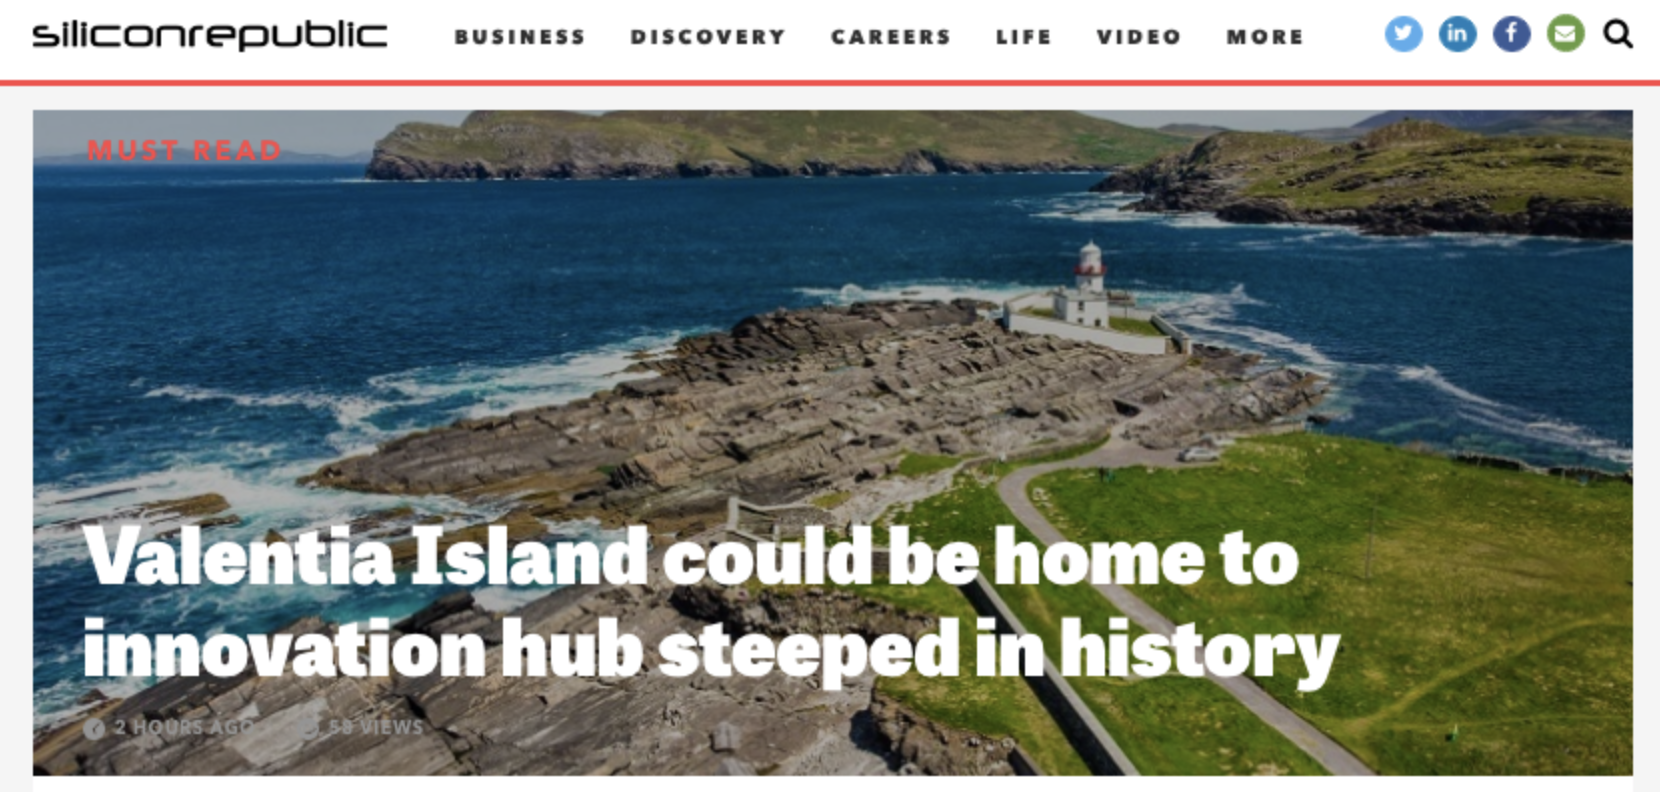 Valentia Island could be home to innovation hub steeped in history | Silicon Republic July 12th 2019